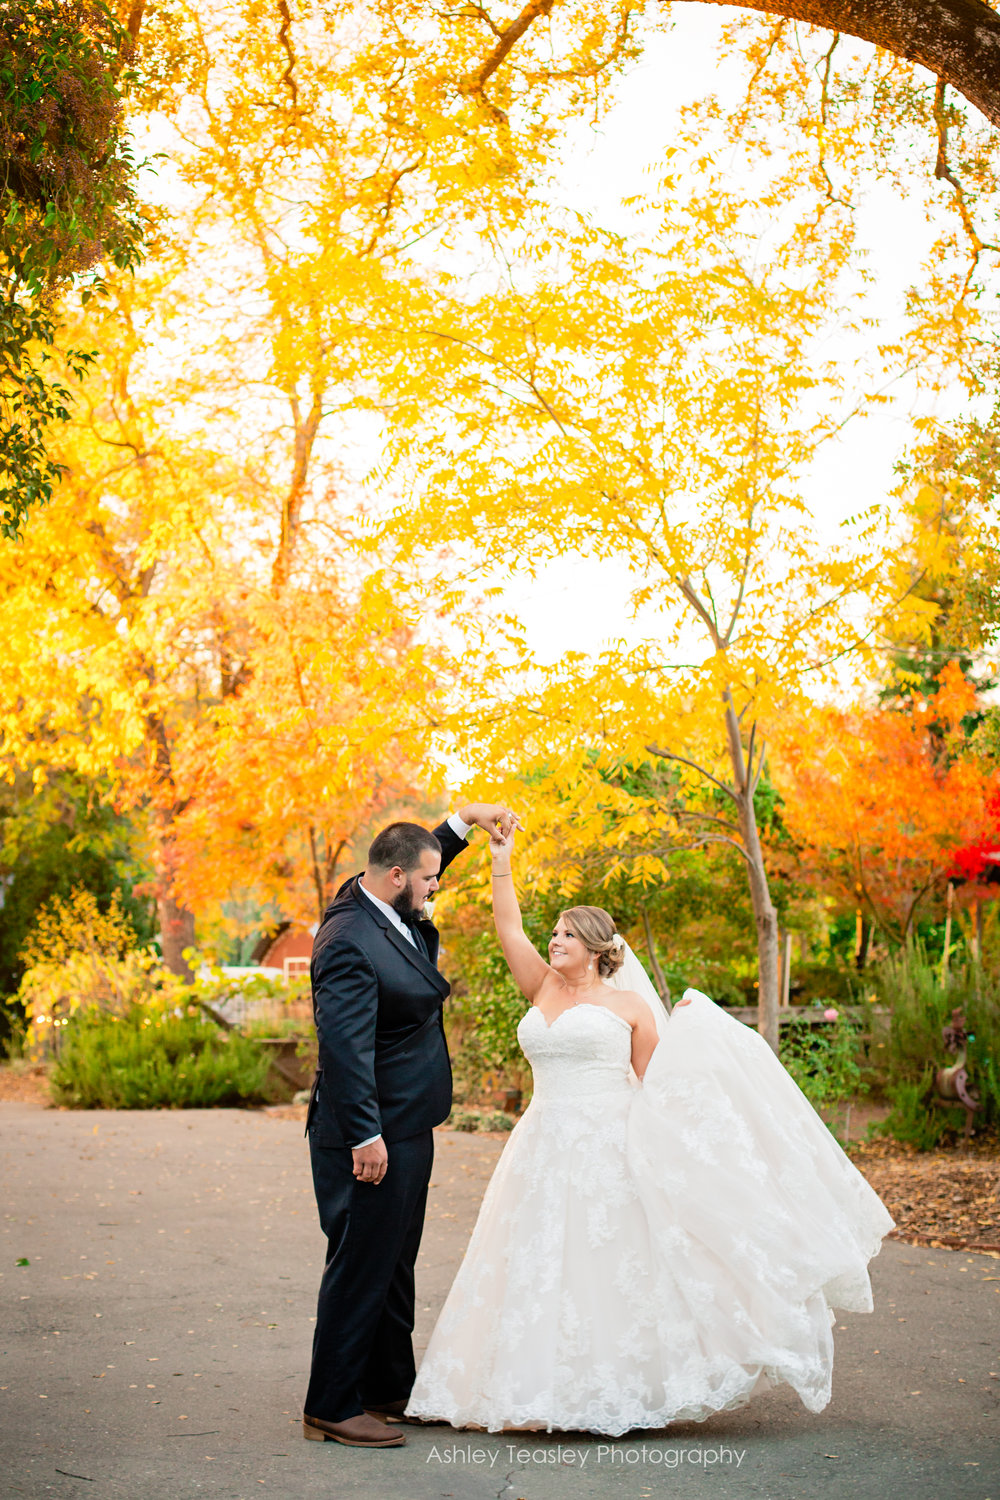 Casey & Brandon - The Flower Farm Inn - Sacramento Wedding Photographer - Ashley Teasley Photography  (5 of 5).JPG